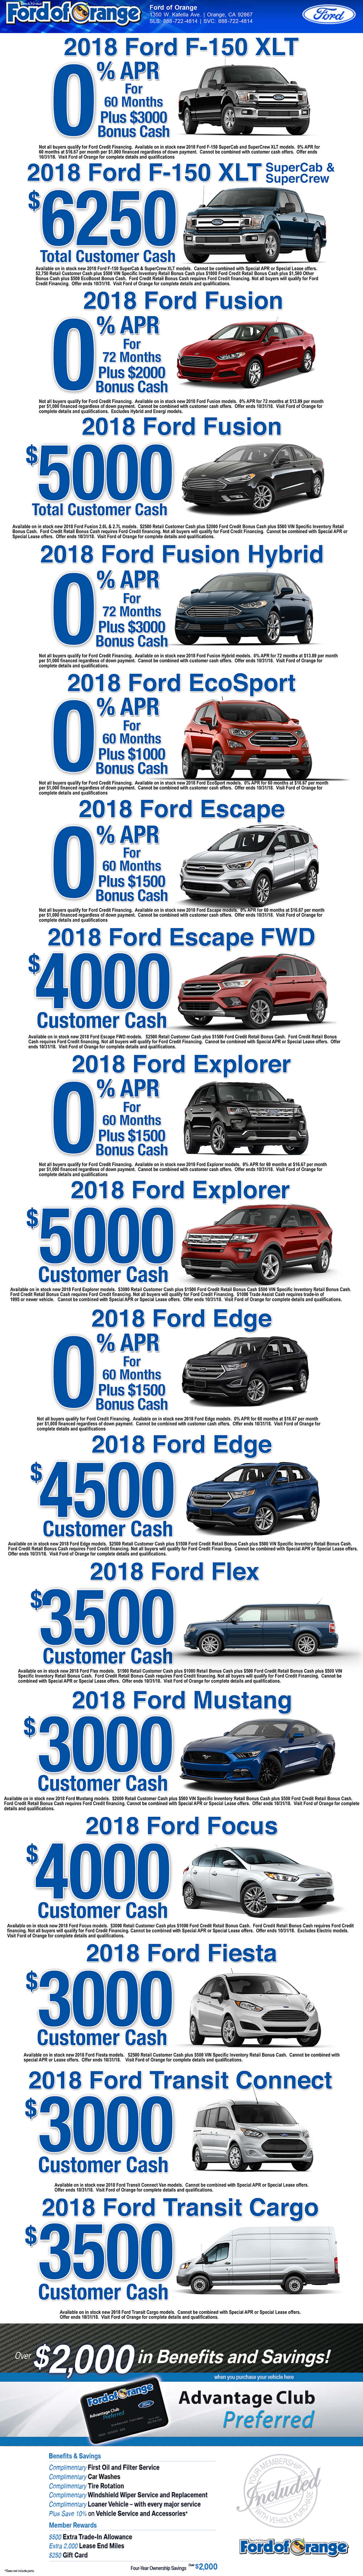 Ford of orange special offers